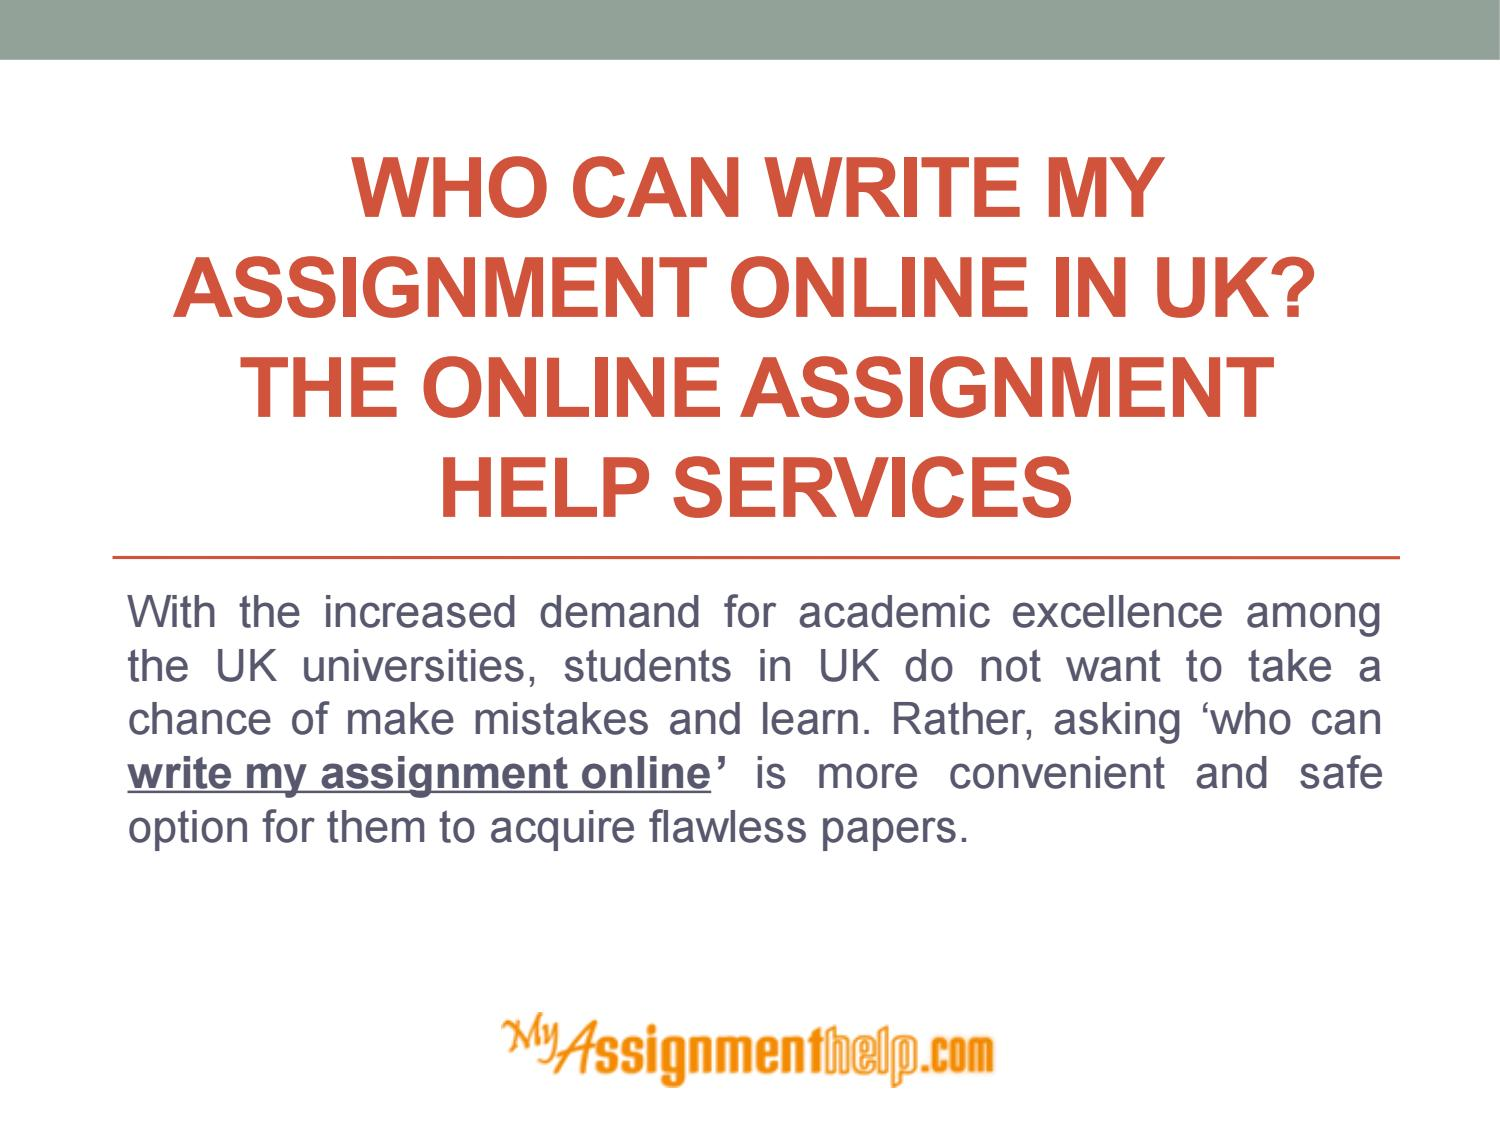 who am i writing assignment Get your paper written by a vetted academic writer with 15% off complete confidentiality zero plagiarism affordable pricing turnaround from 3 hours.